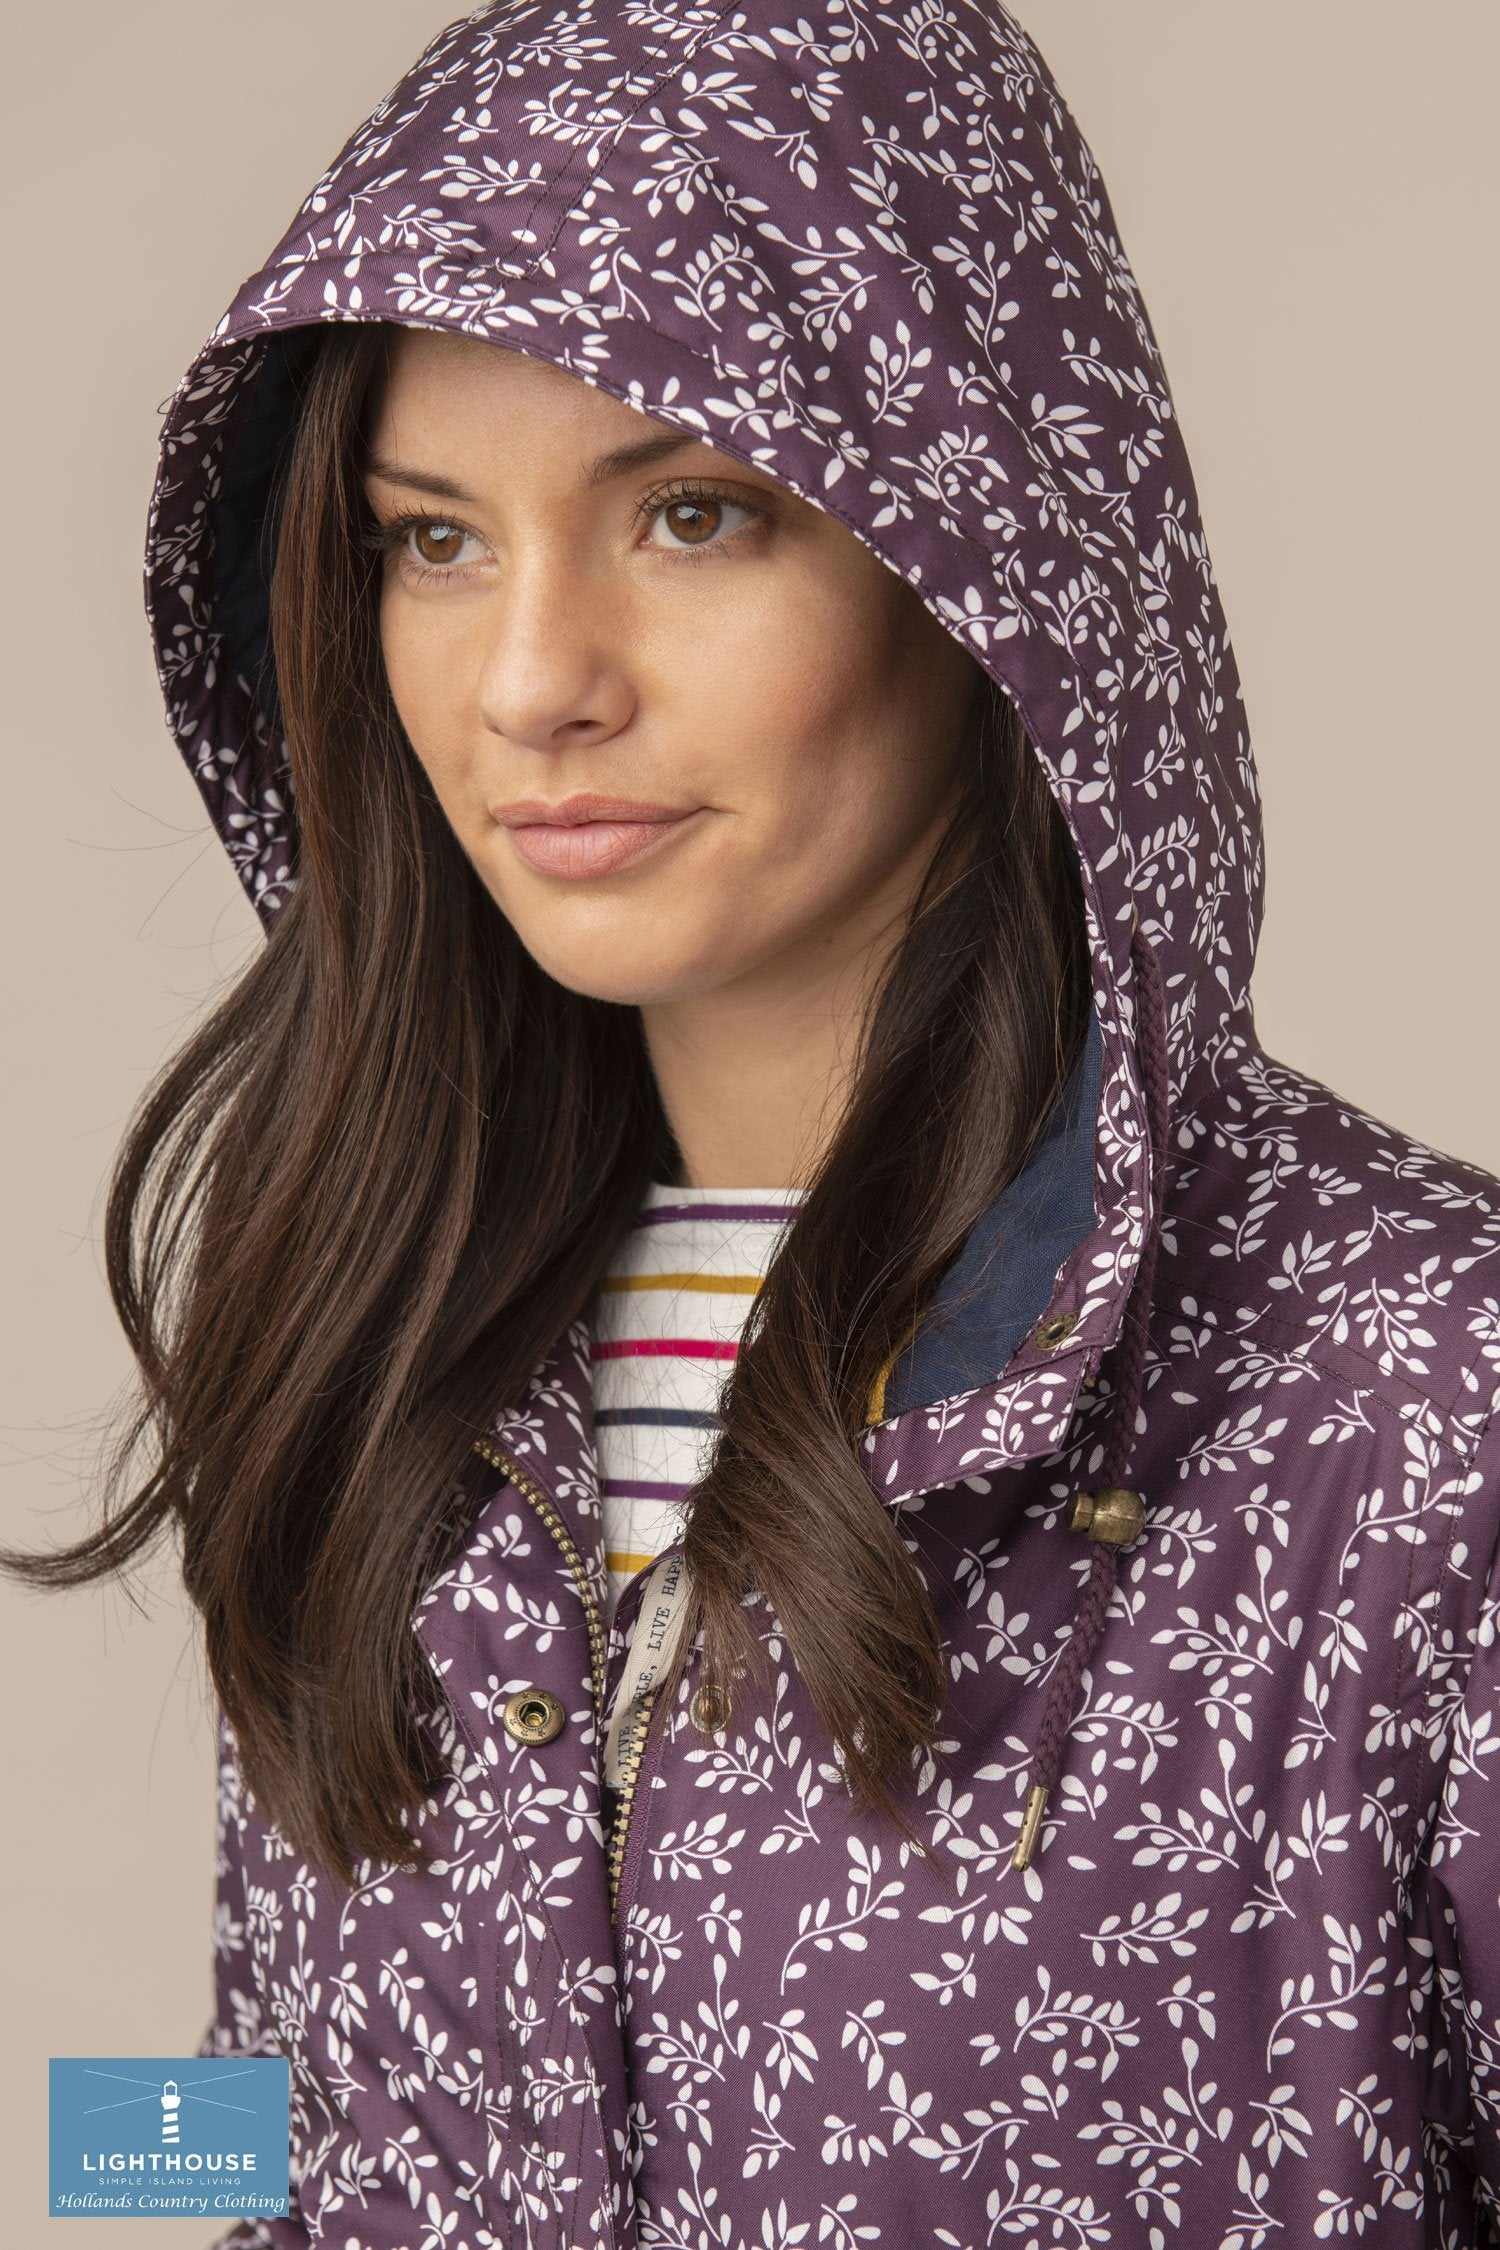 Blackberry hood up Lauren Quilted Padded Waterproof Coat by Lighthouse